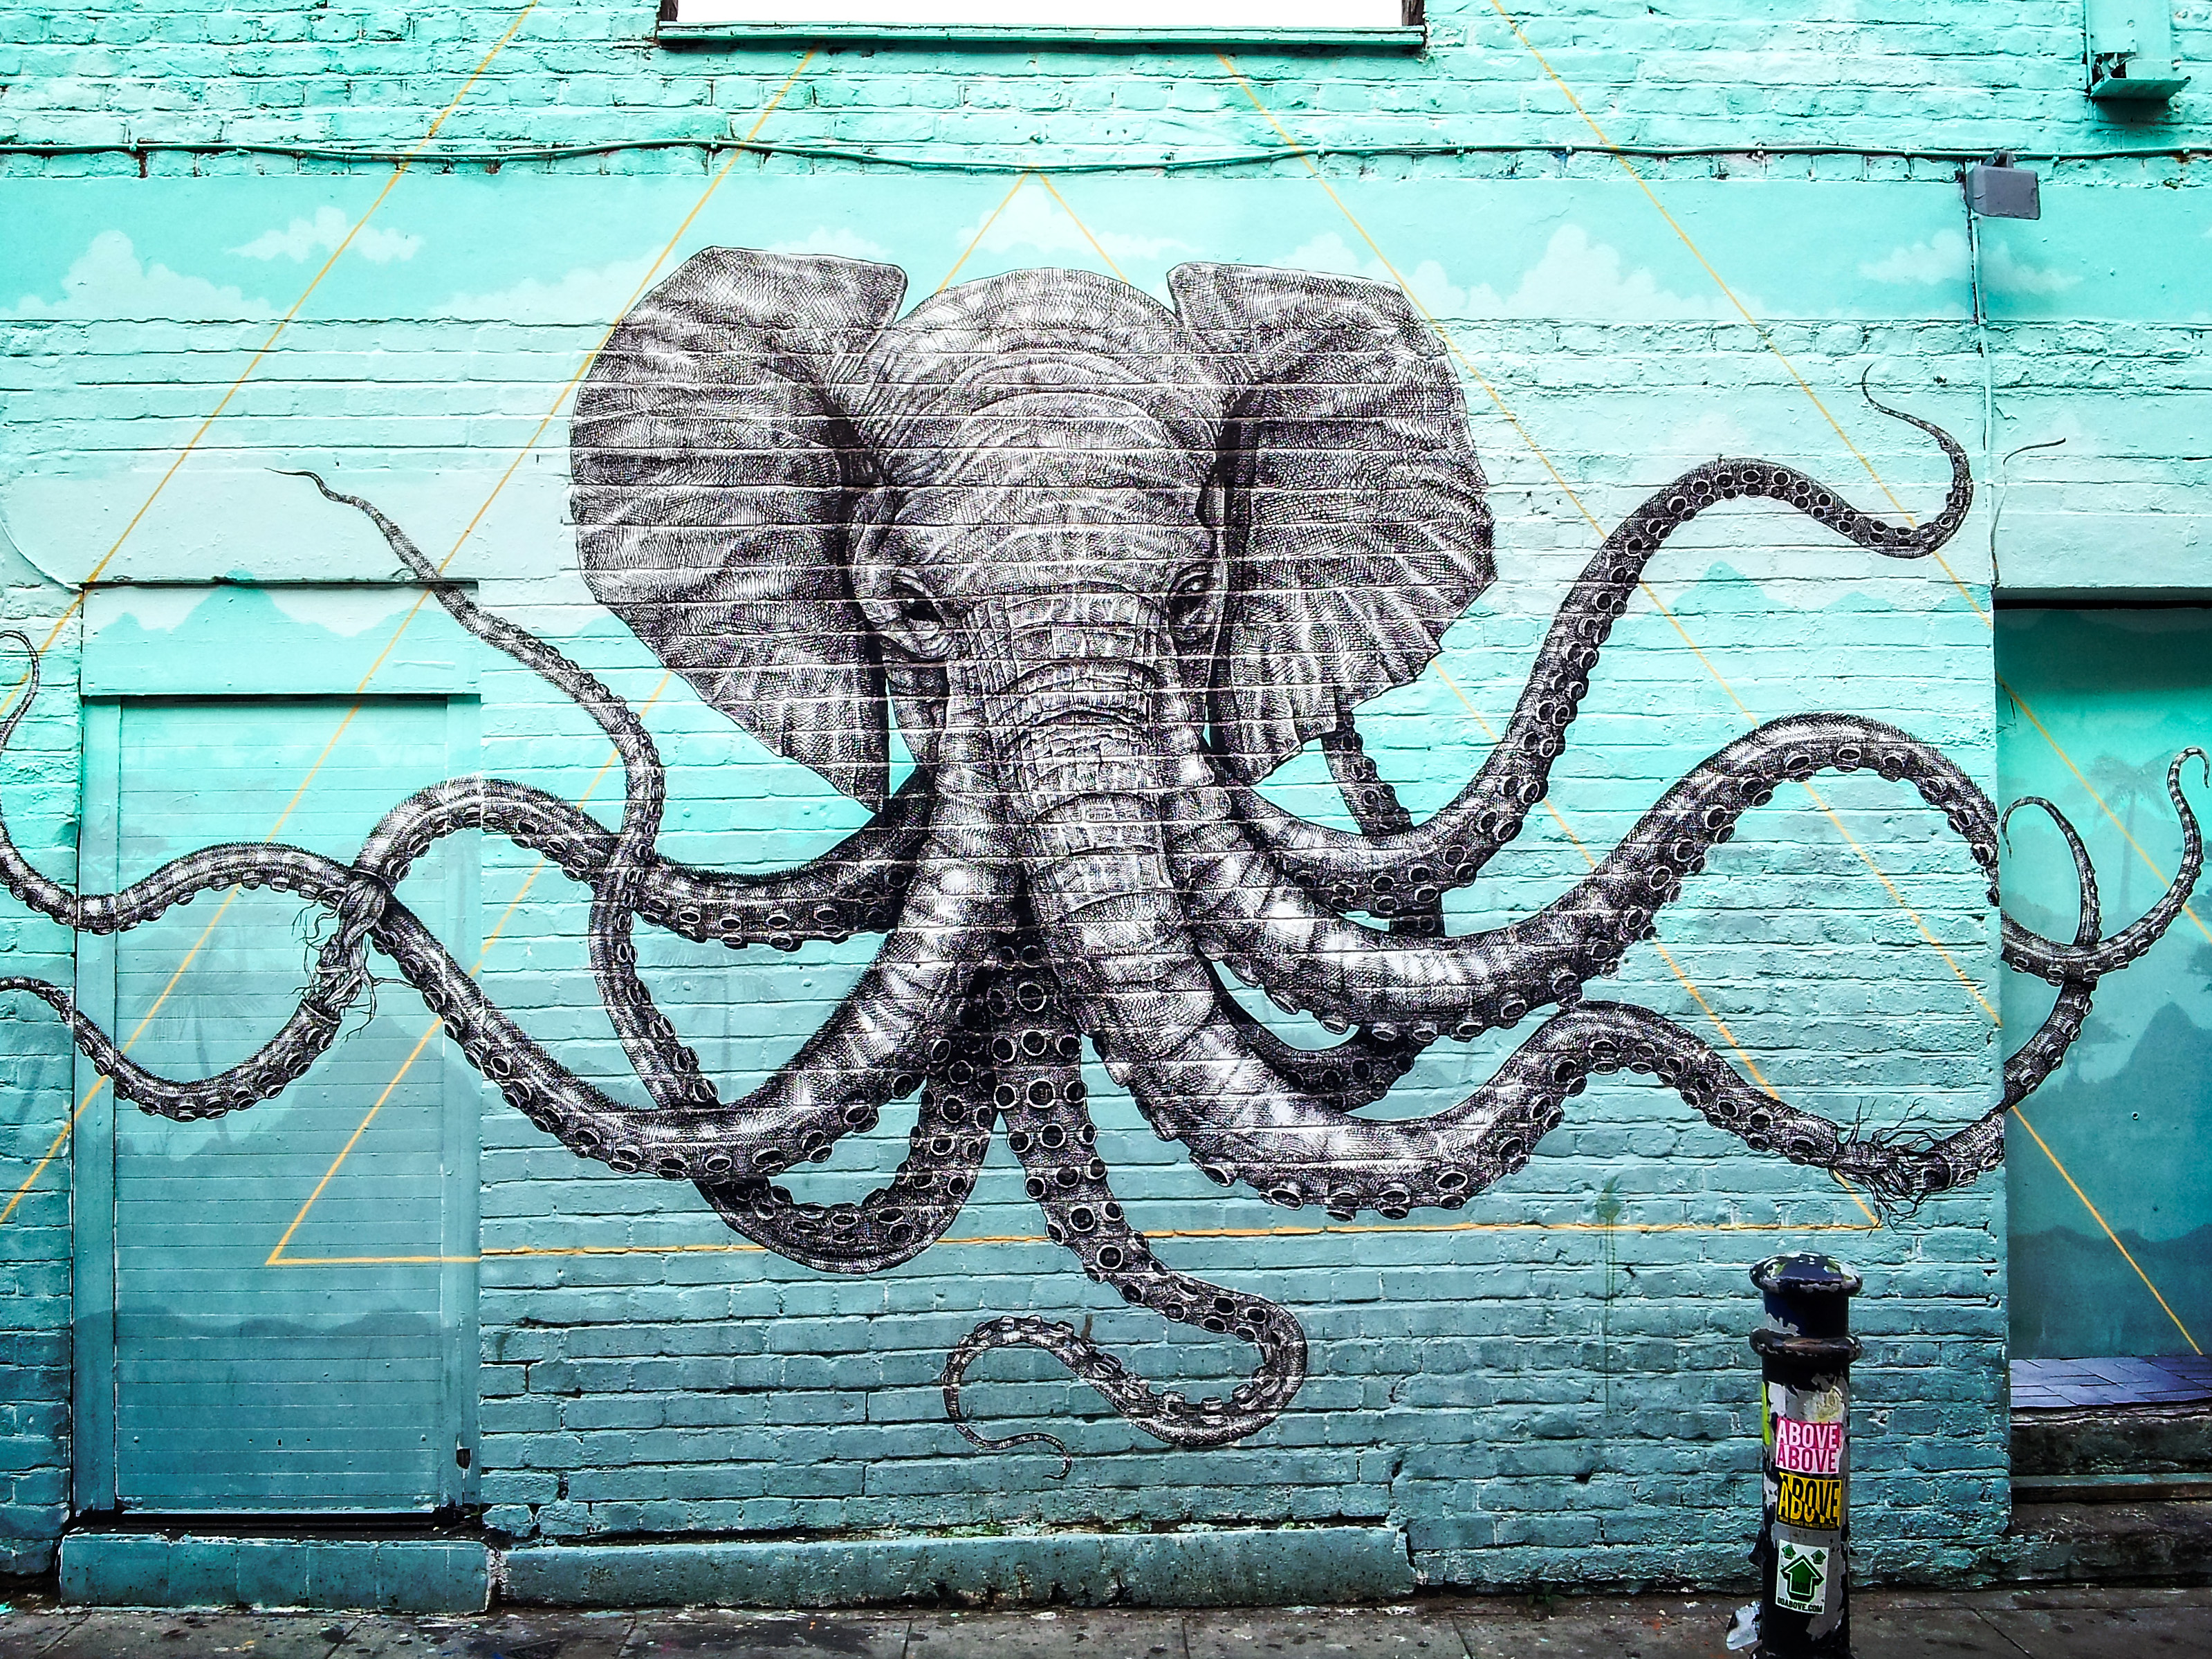 92679 download wallpaper Graffiti, Elephant, Octopus, Tentacles, Art screensavers and pictures for free